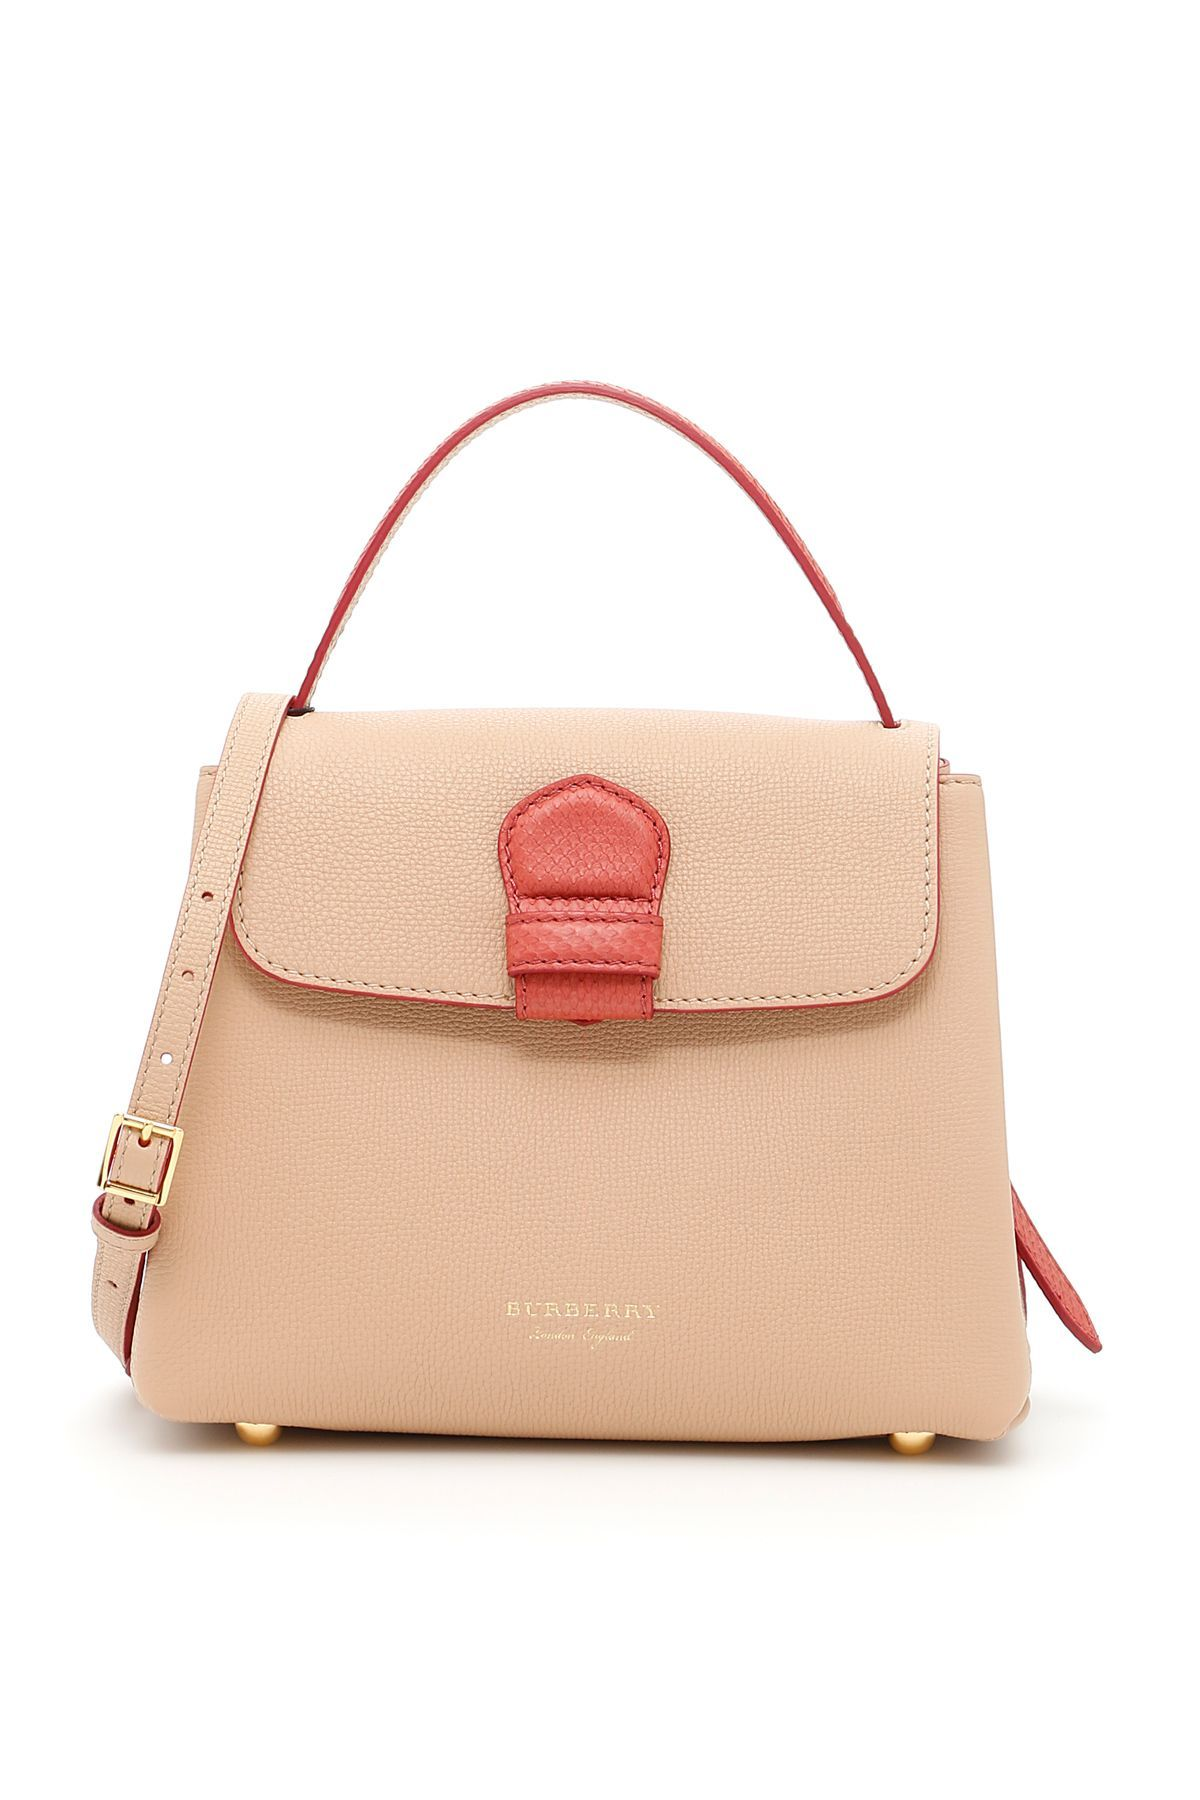 715077b99ca4 BURBERRY SMALL CAMBERLEY BAG.  burberry  bags  shoulder bags  hand bags   canvas  leather  lining